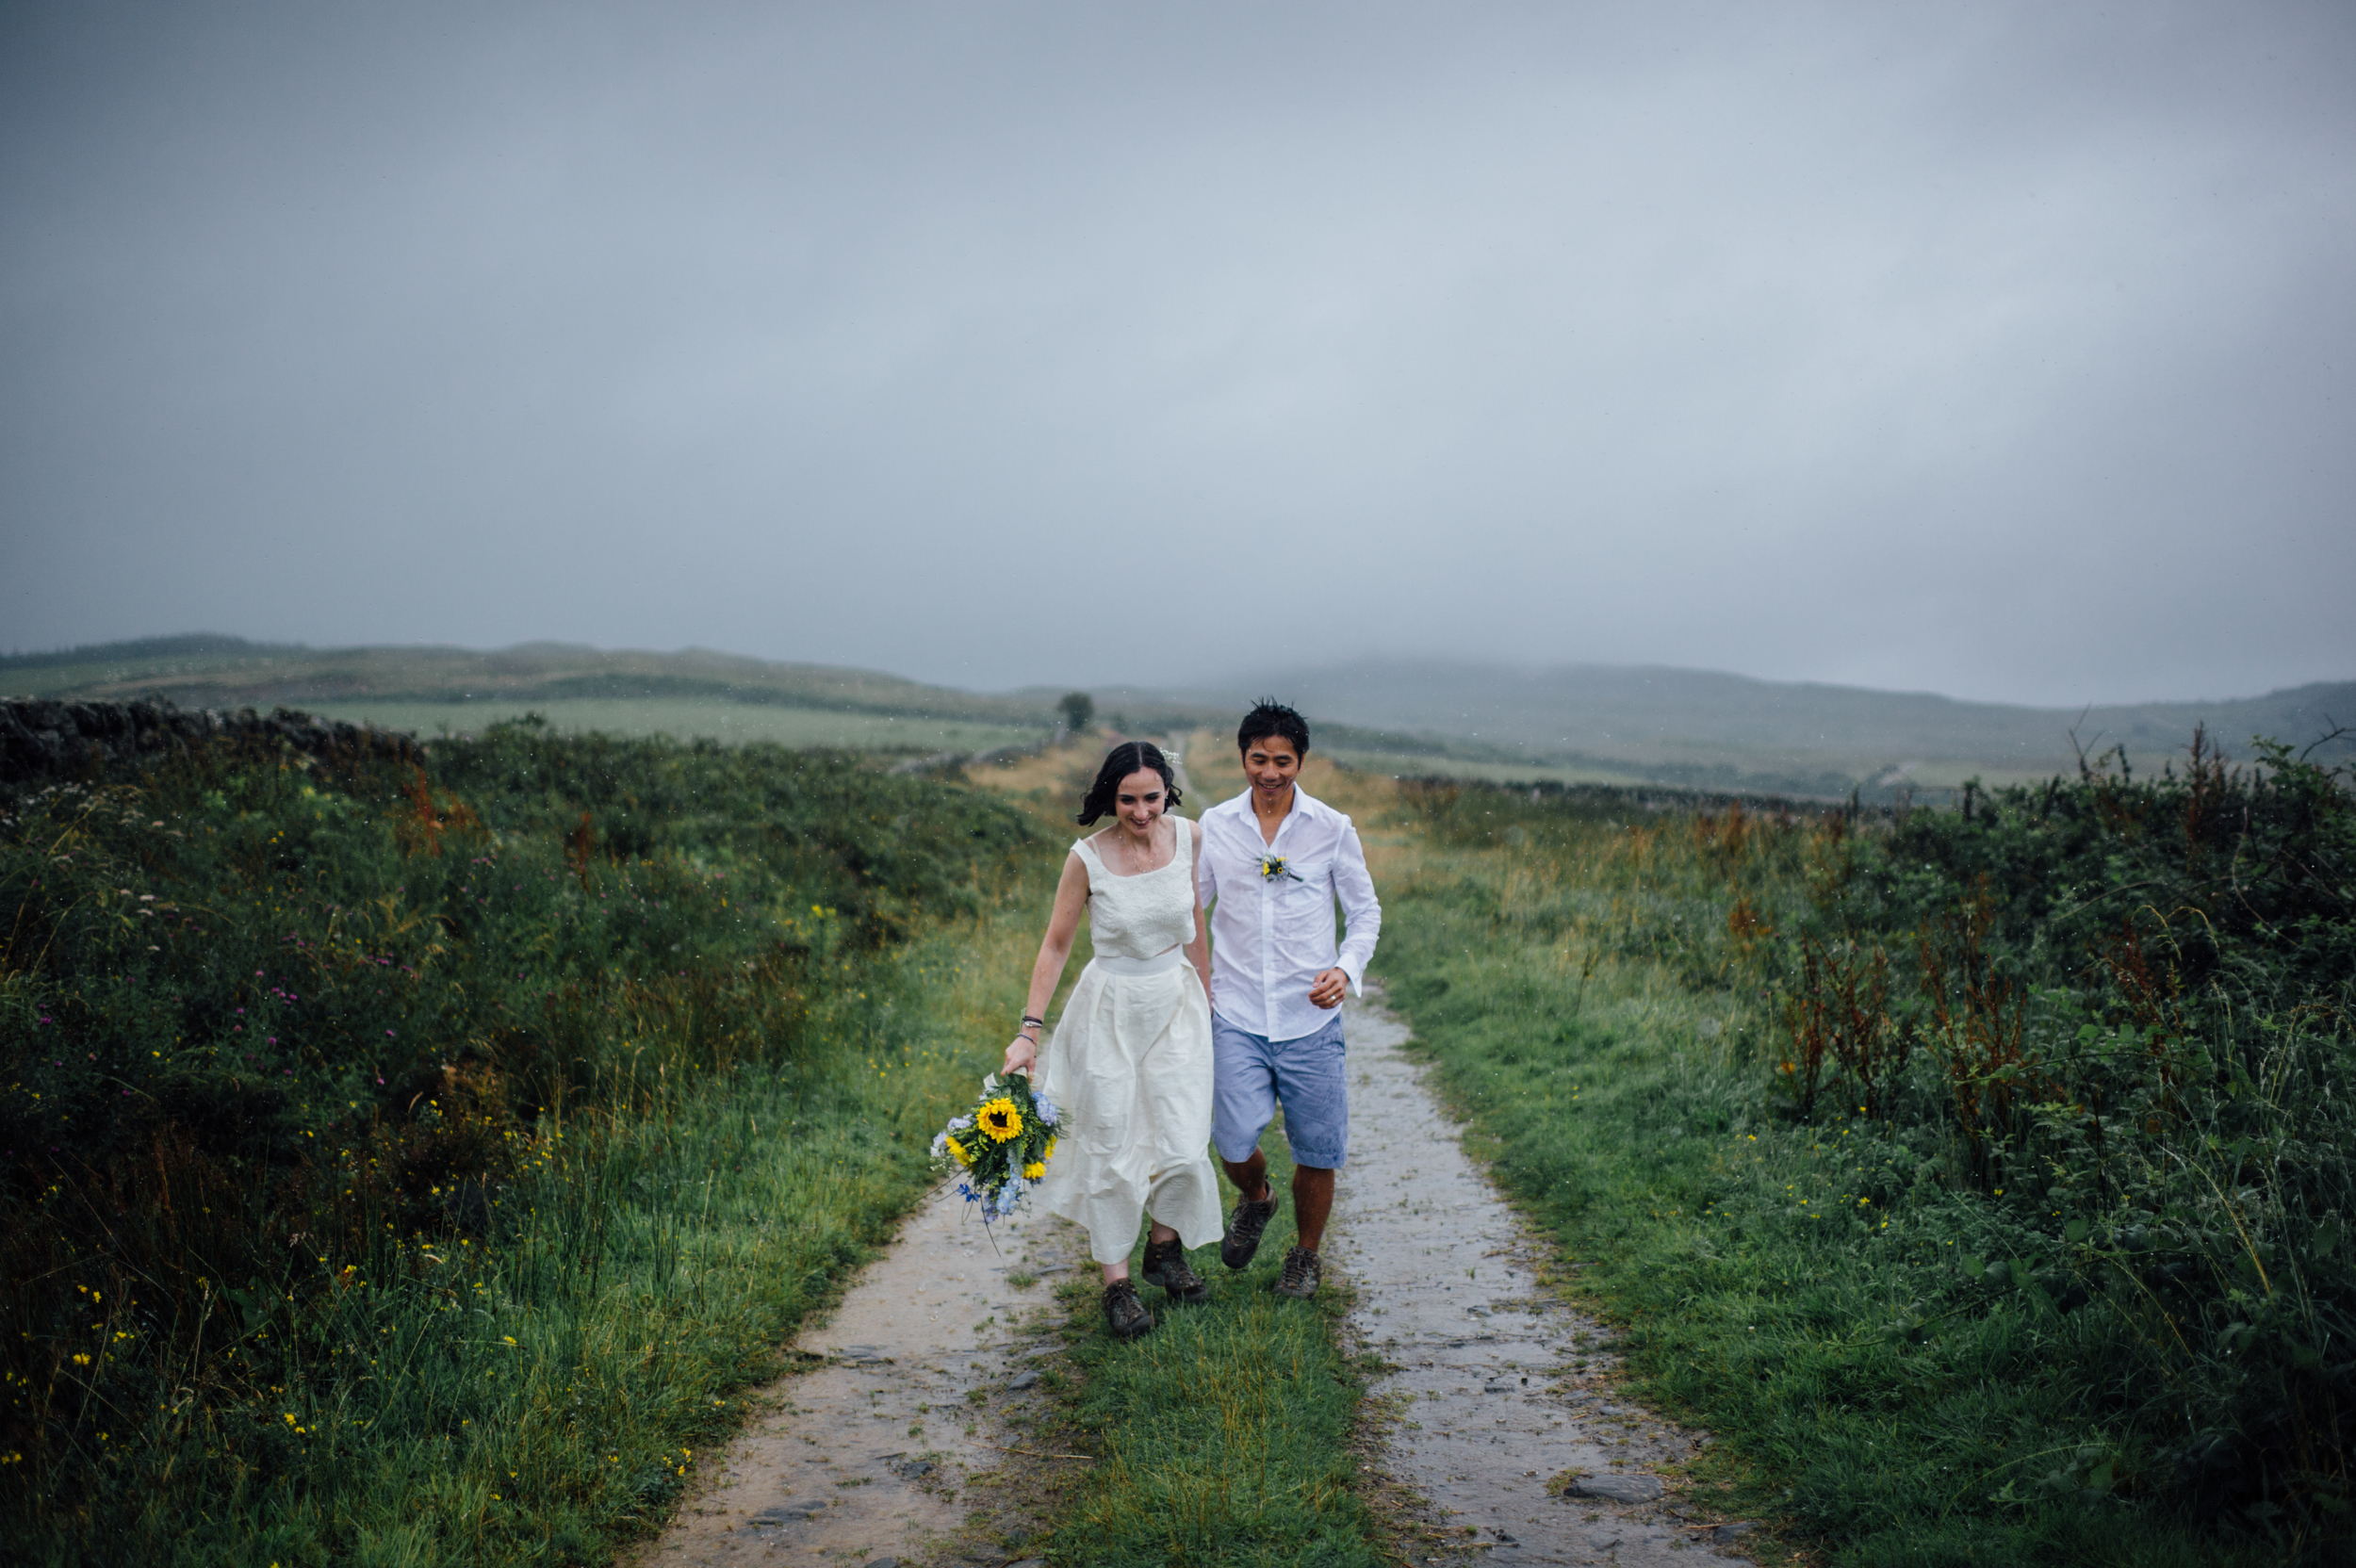 183-lisa-devine-photography-alternative-creative-wedding-photography-glasgow-crear-scotland-uk.JPG